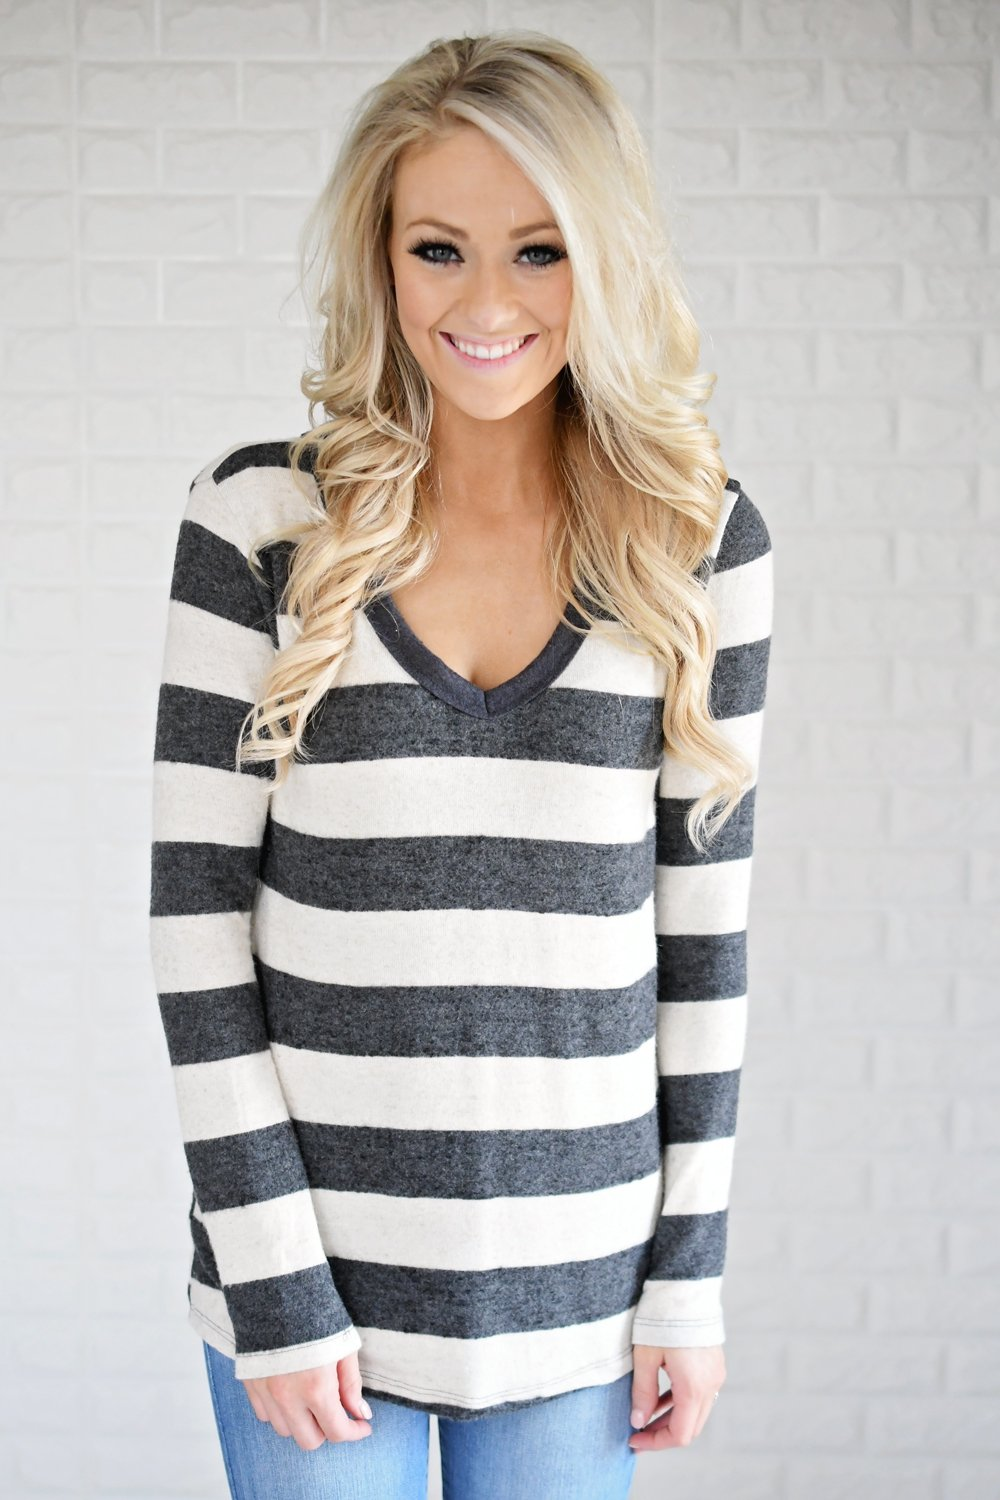 Take Chances Striped Top